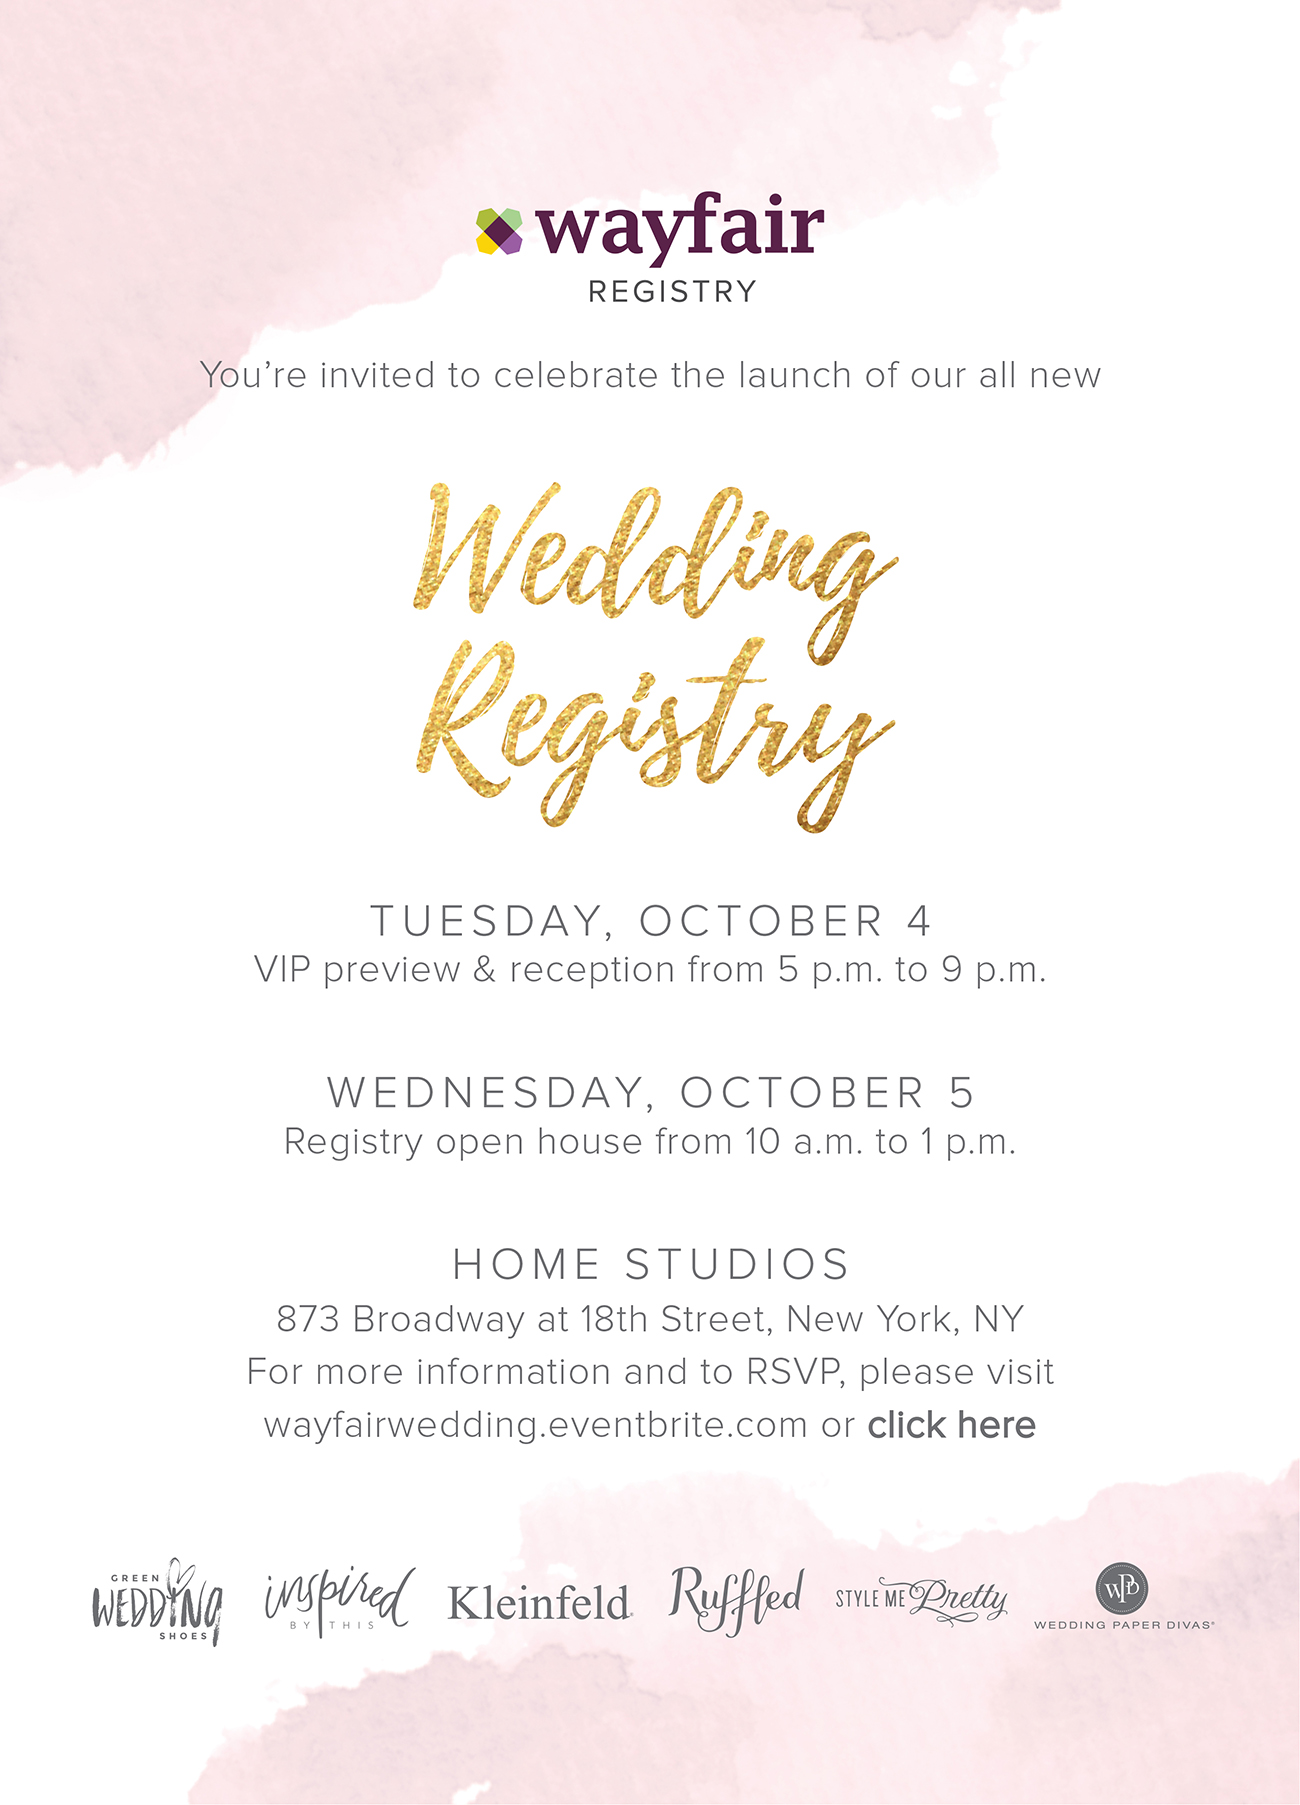 Wayfair Registry Event